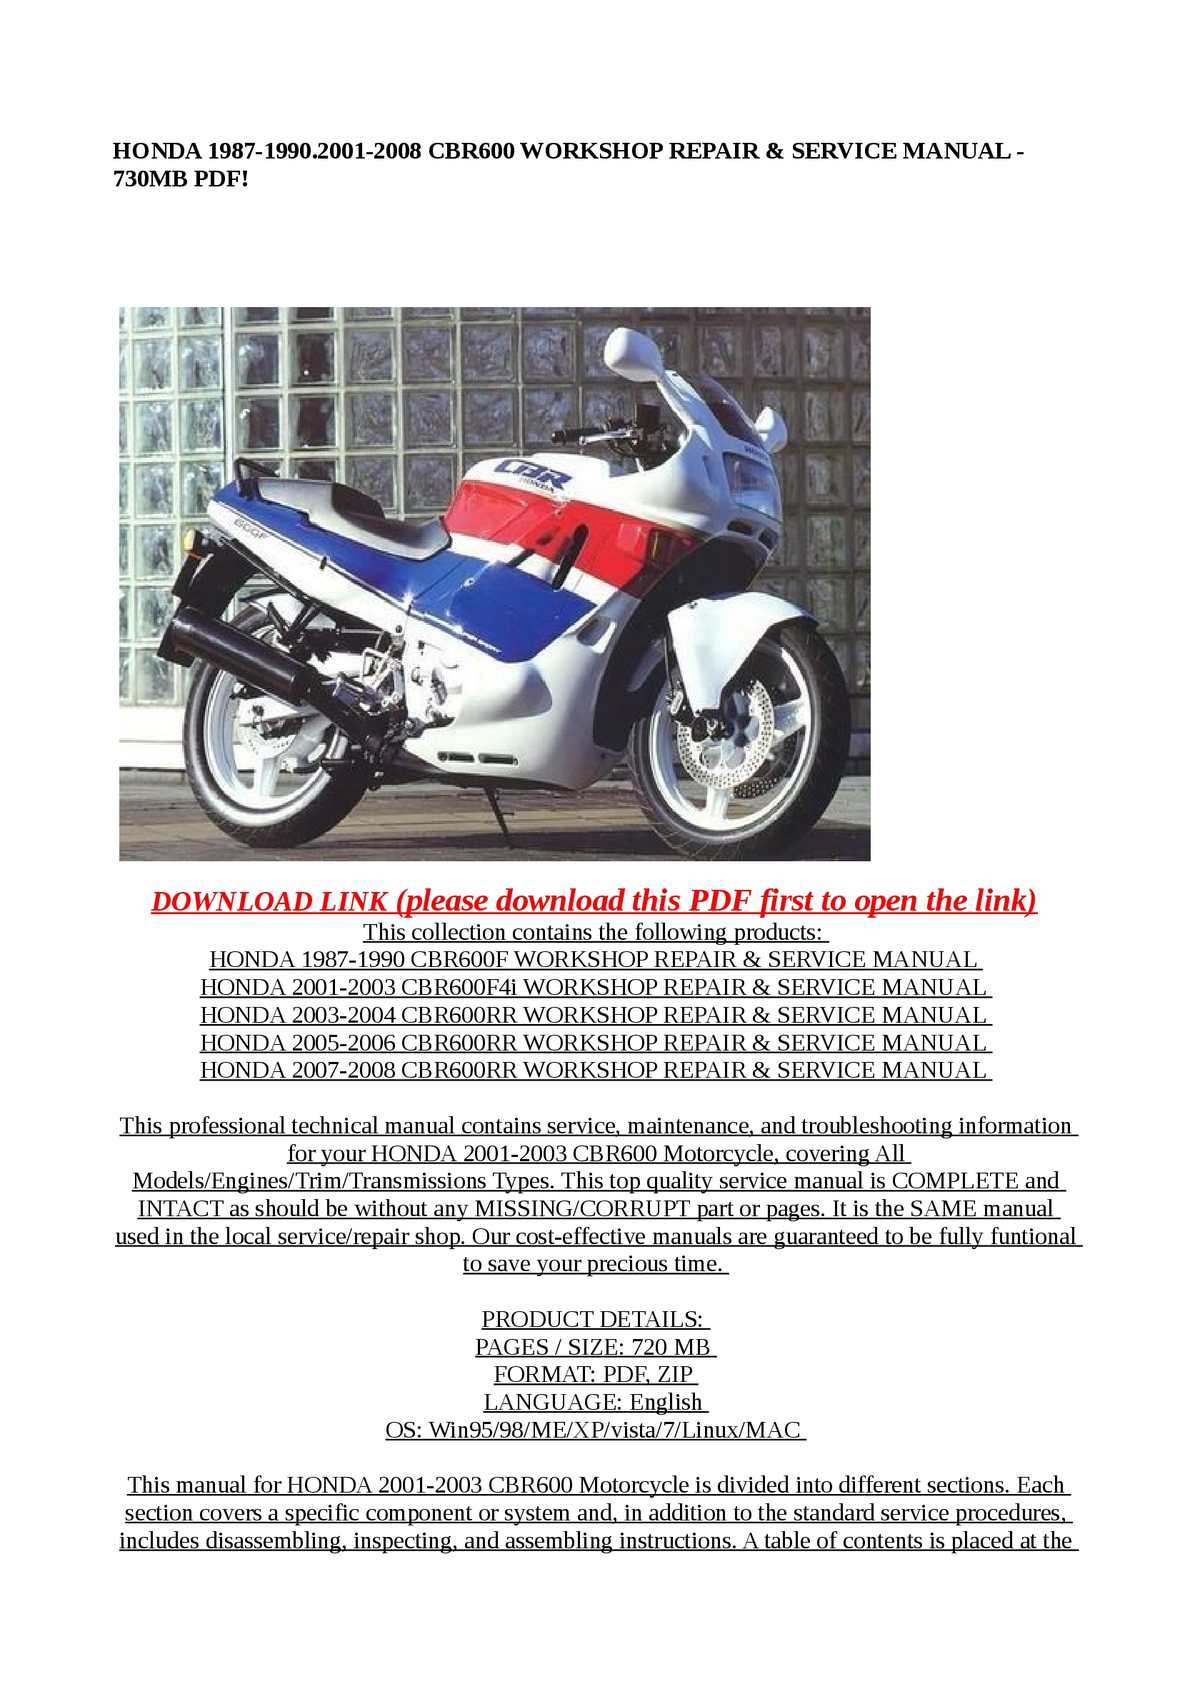 Calameo Honda 1987 1990 2001 2008 Cbr600 Workshop Repair Serv